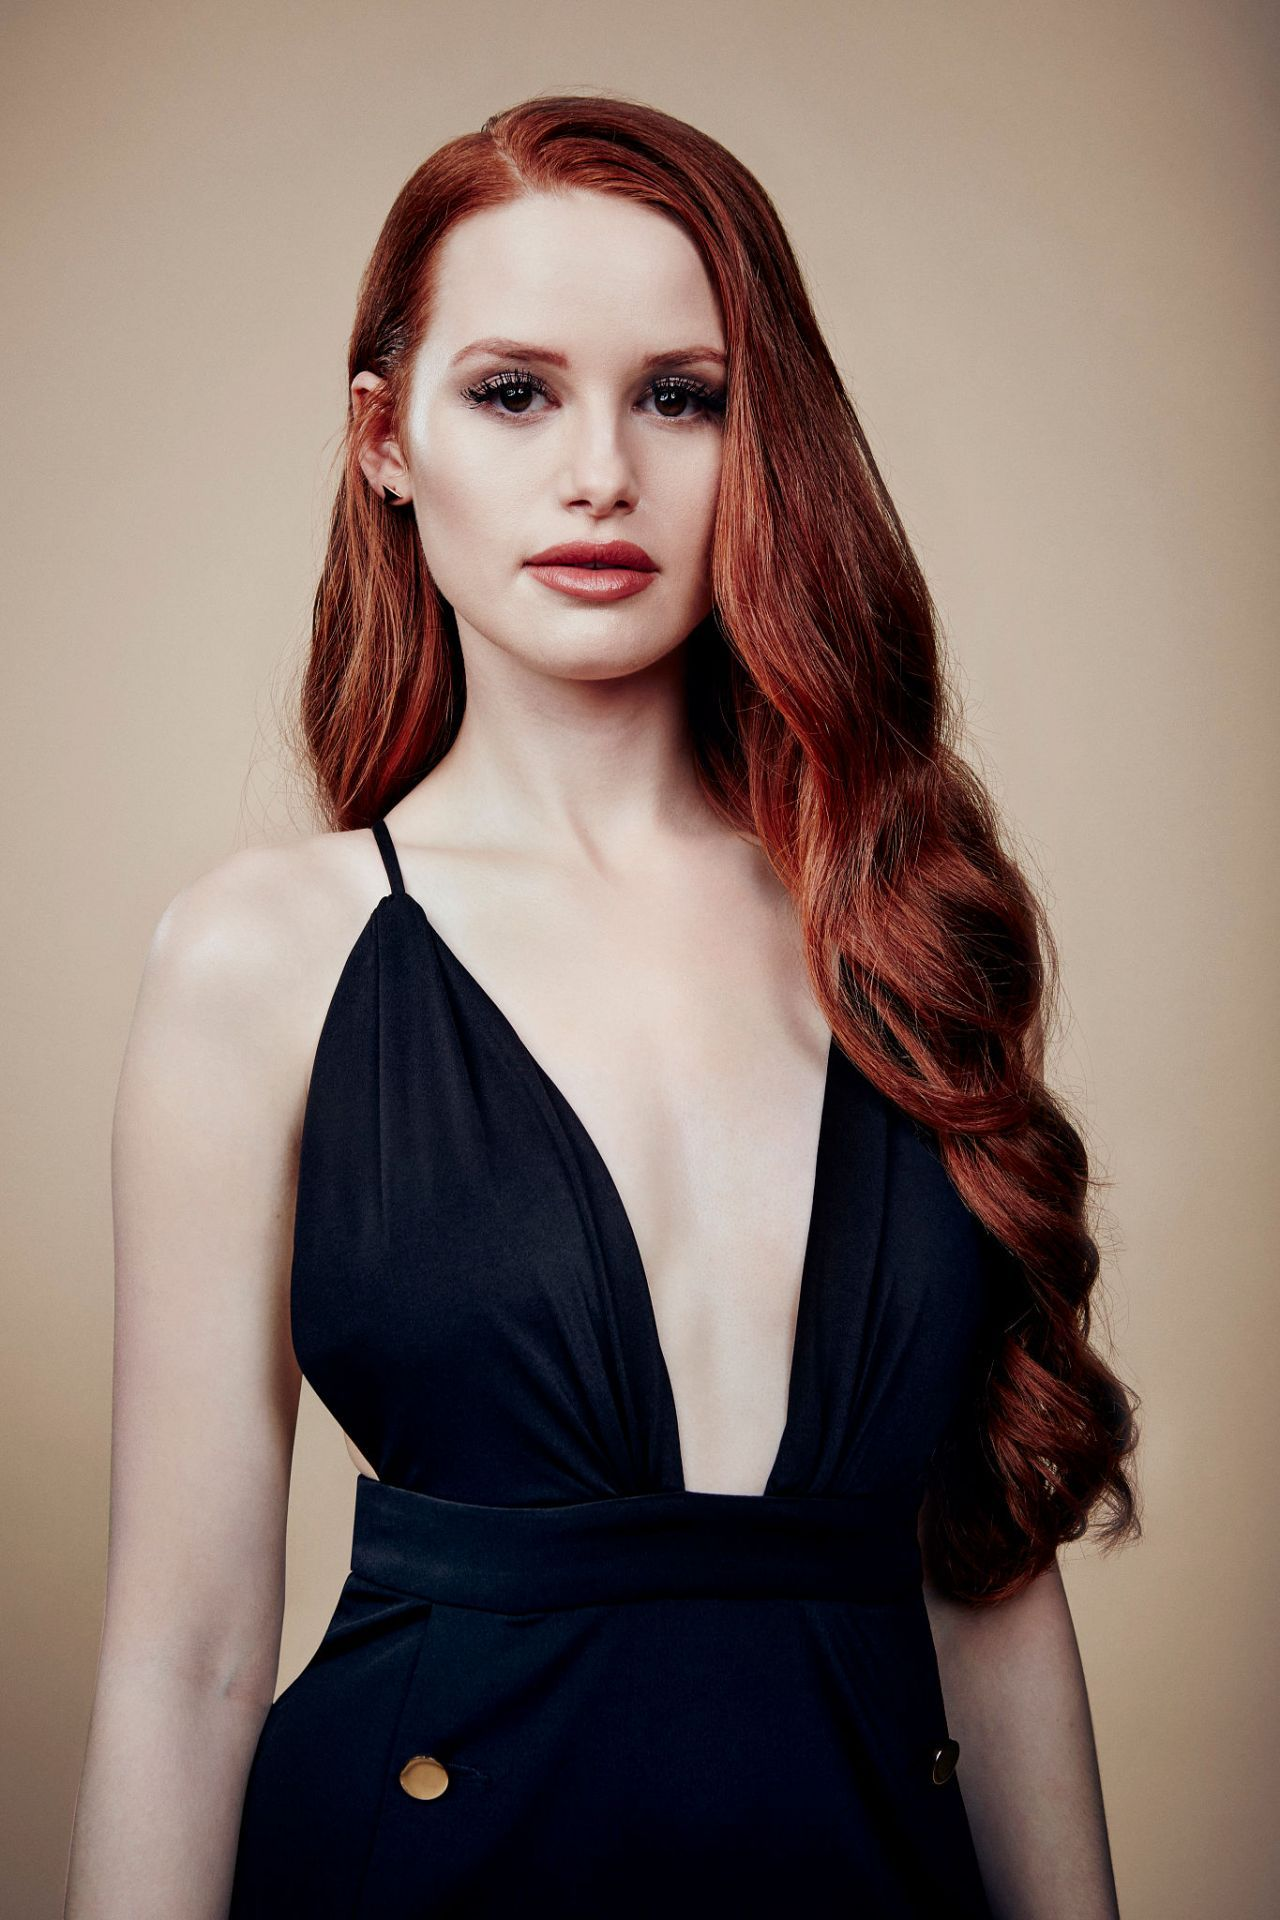 2019 Madelaine Petsch naked (49 foto and video), Tits, Hot, Selfie, cleavage 2020